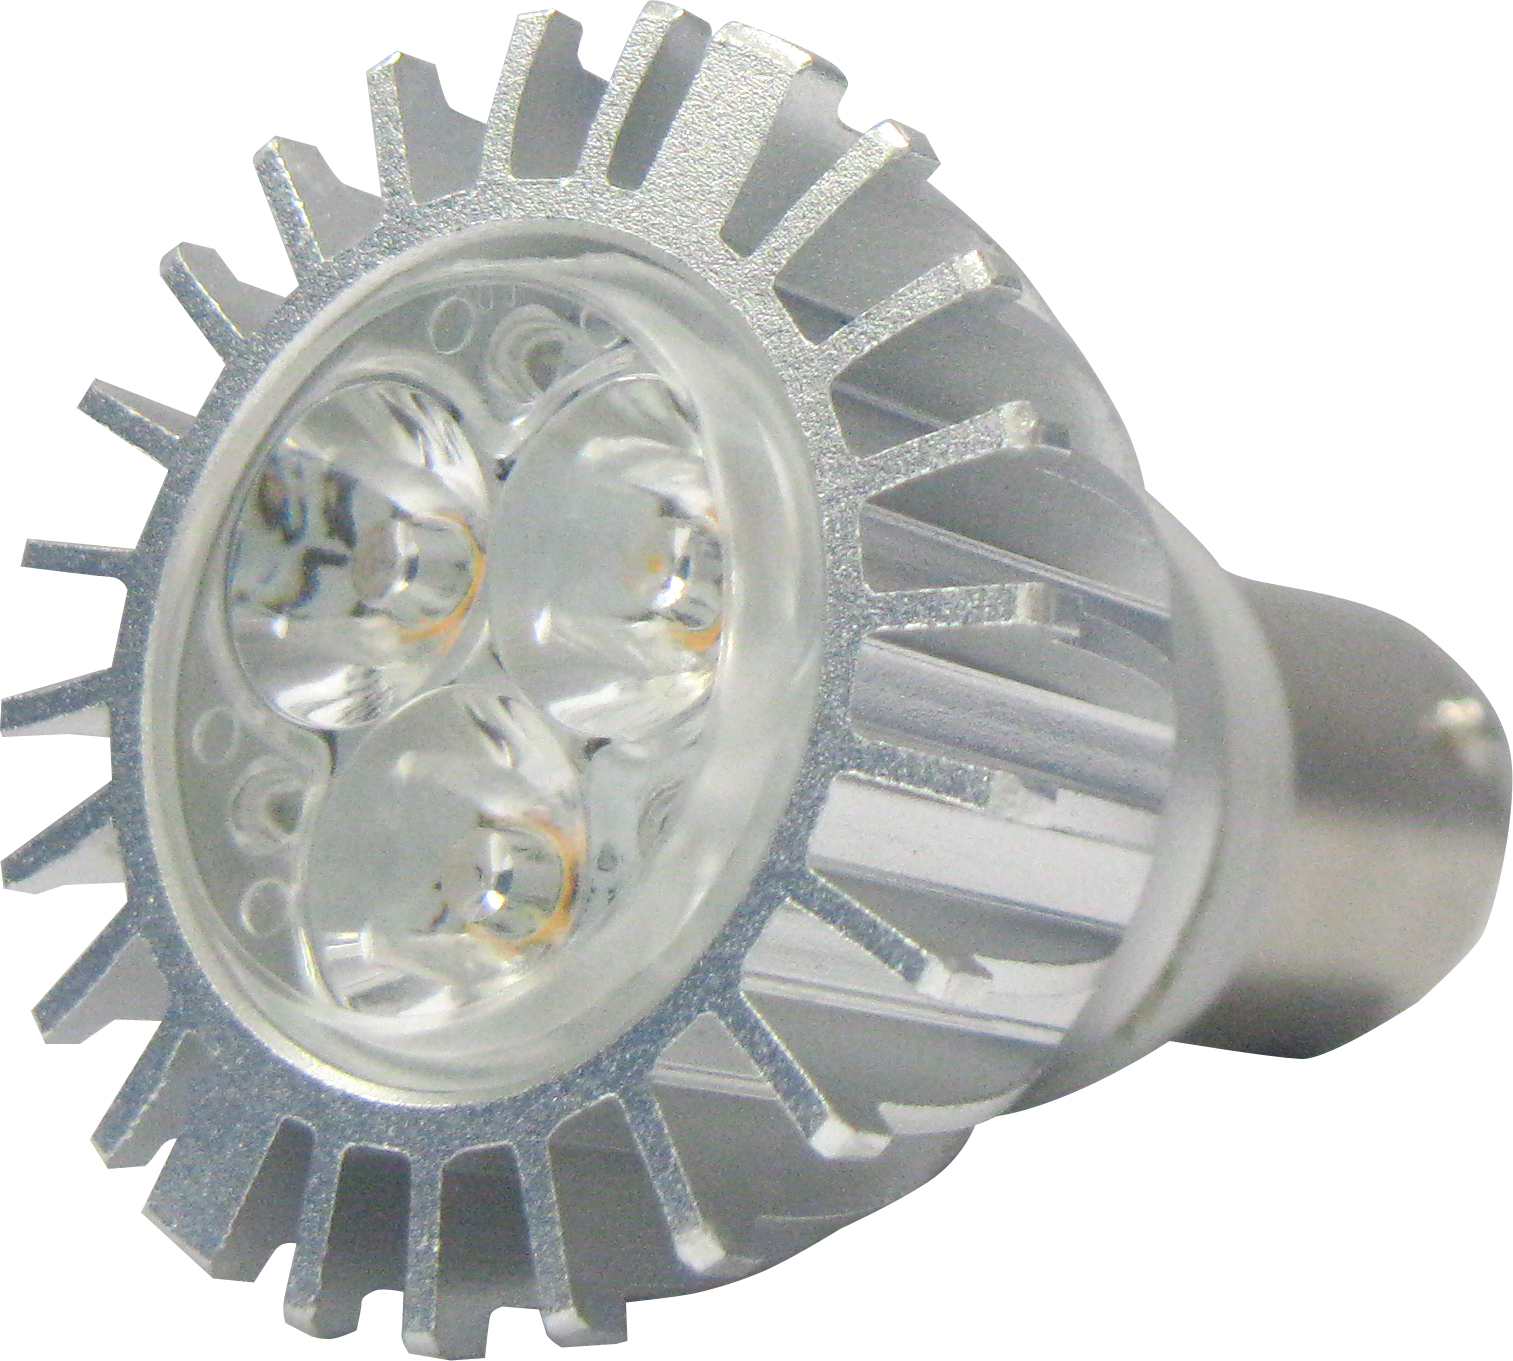 MR11FTD/827/BA15D/LED 81094 LED MR11 3W 30DEG 2700K BA15D PROLED